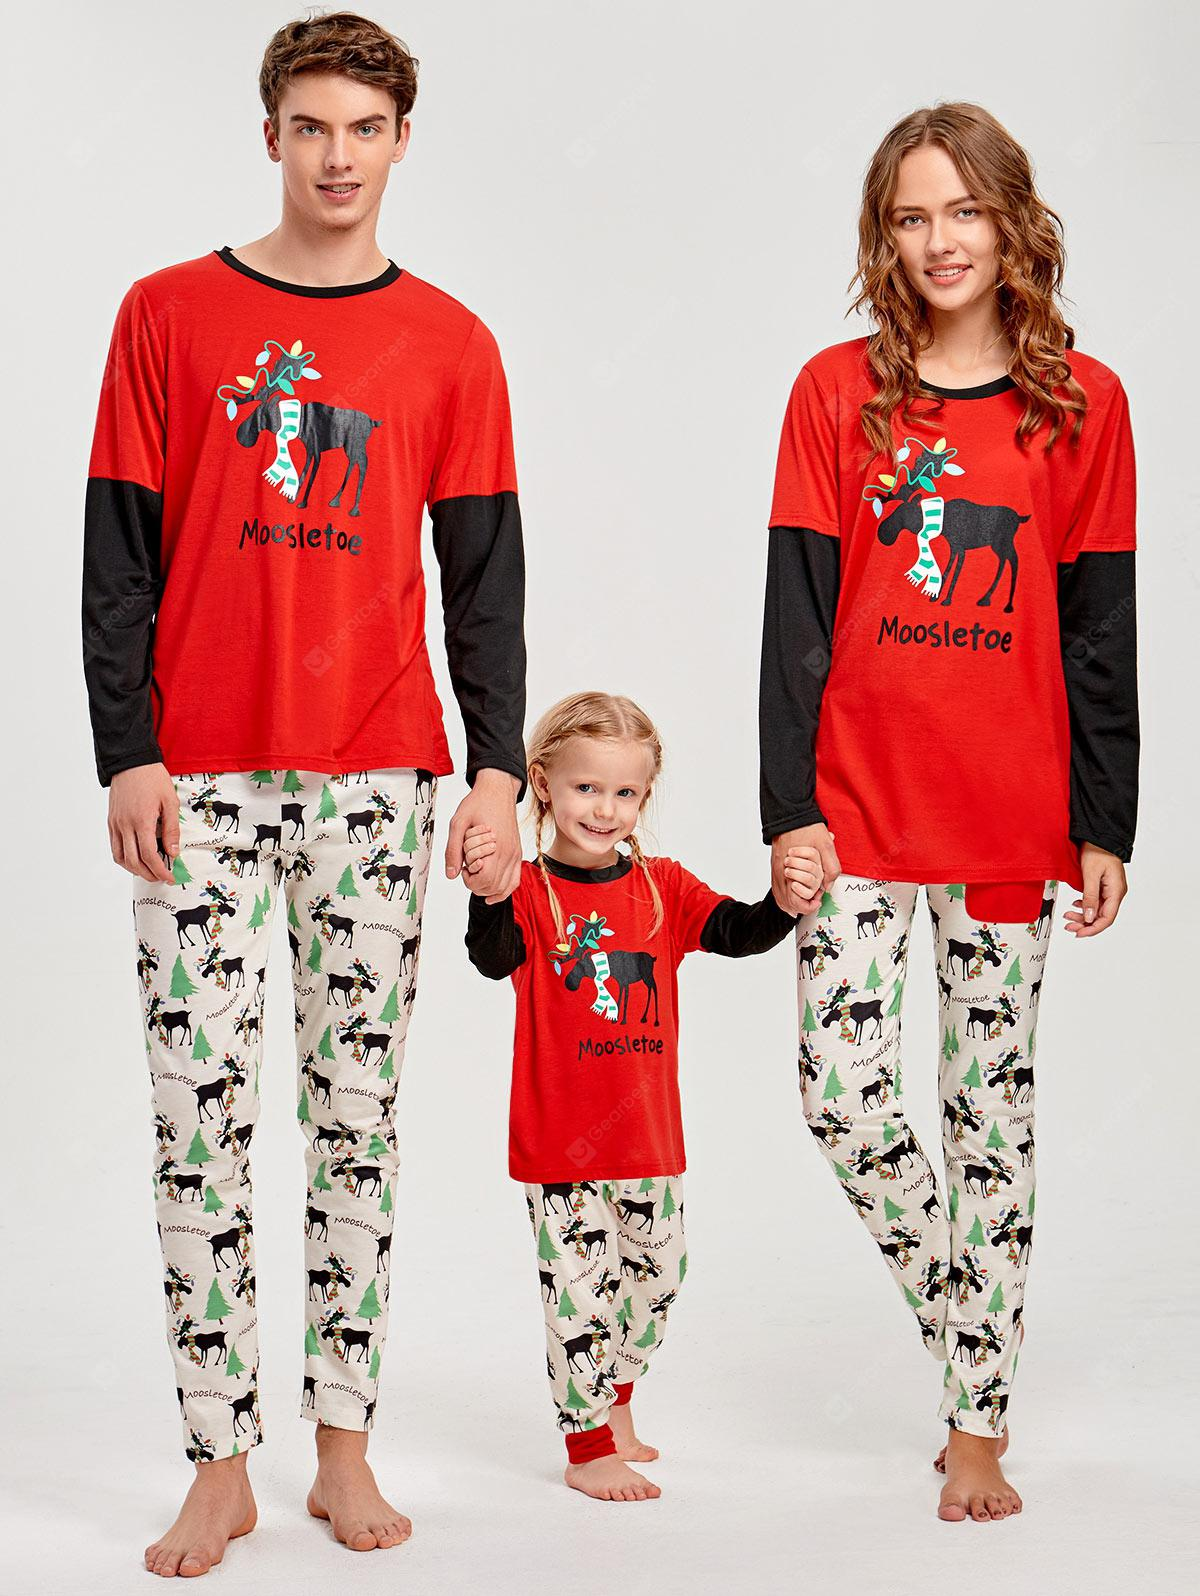 Matching Family Christmas Pajamas.Long Sleeve Elk Print Matching Family Christmas Pajama